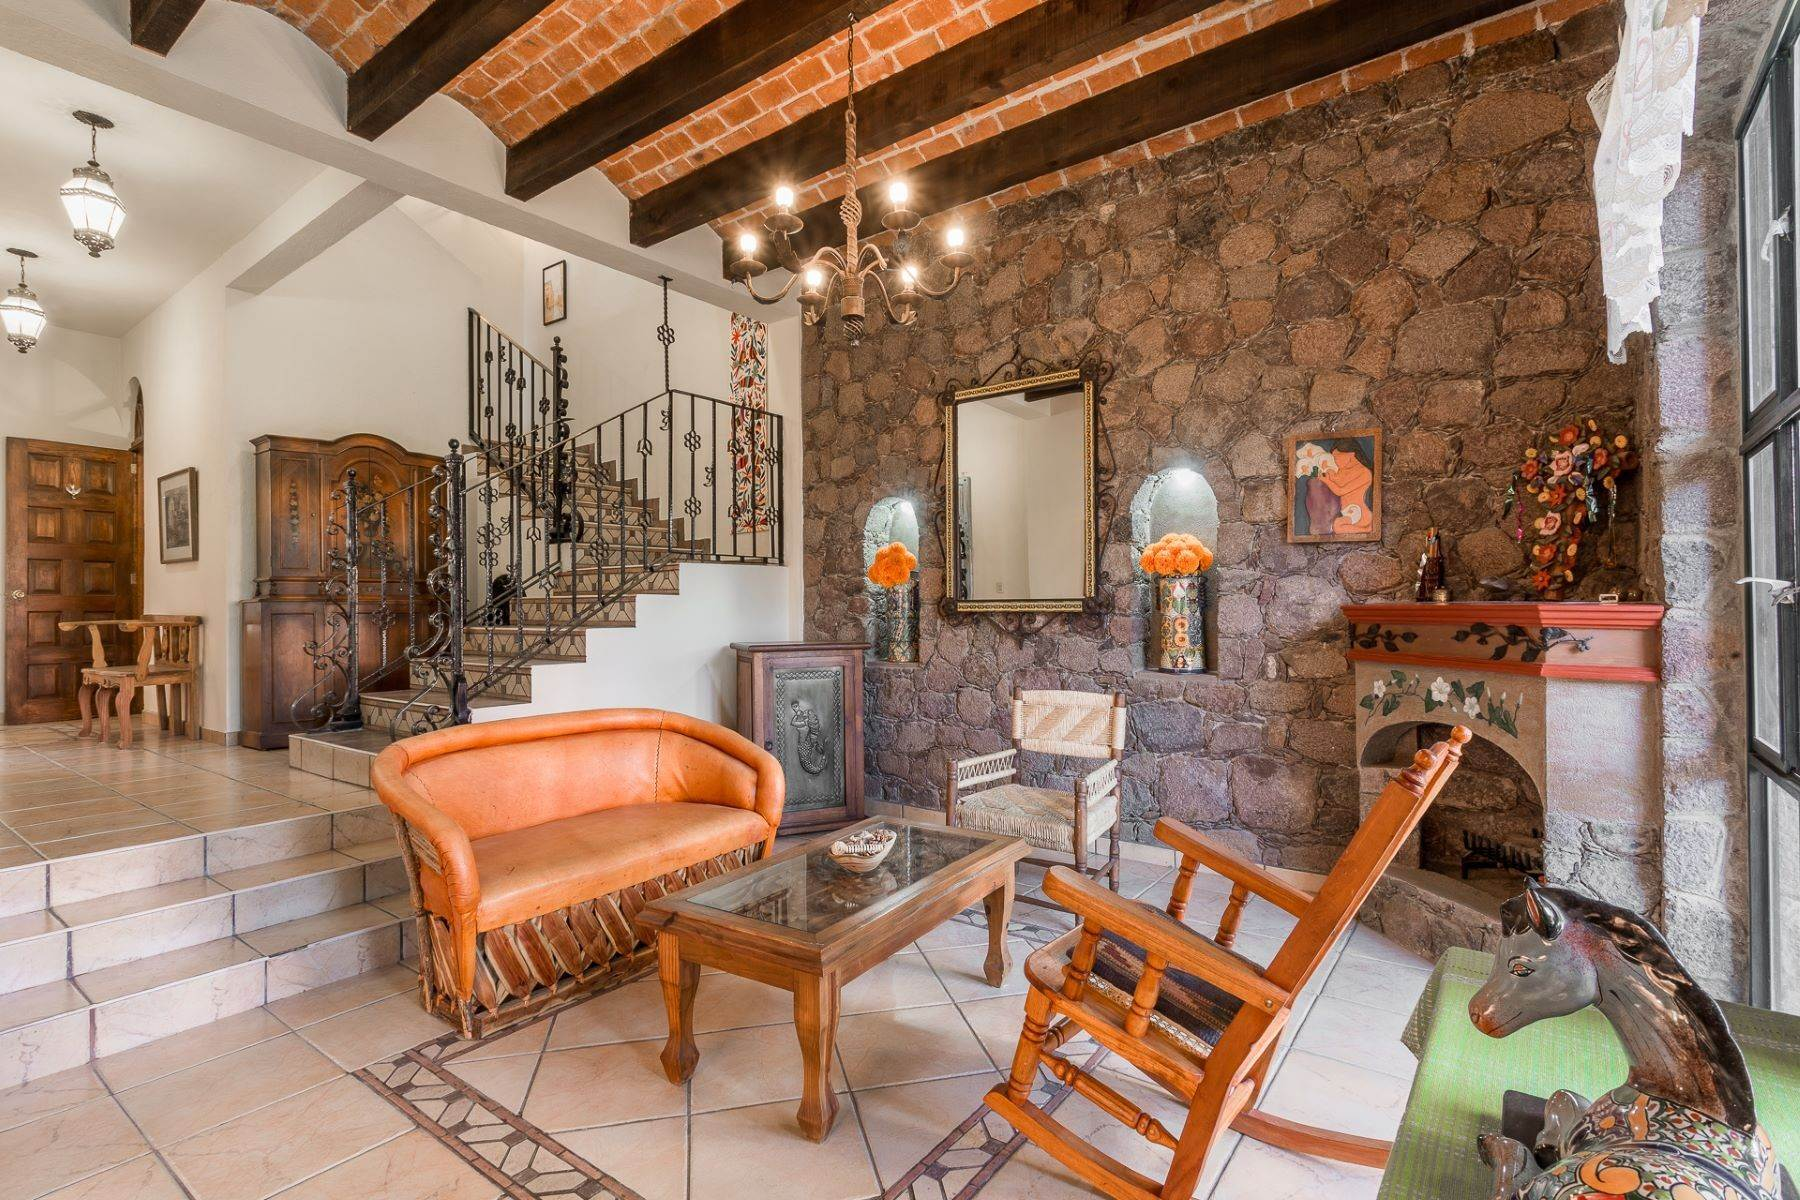 Single Family Homes for Sale at Casa Artesanal San Juan 39 San Miguel De Allende, Guanajuato 37750 Mexico